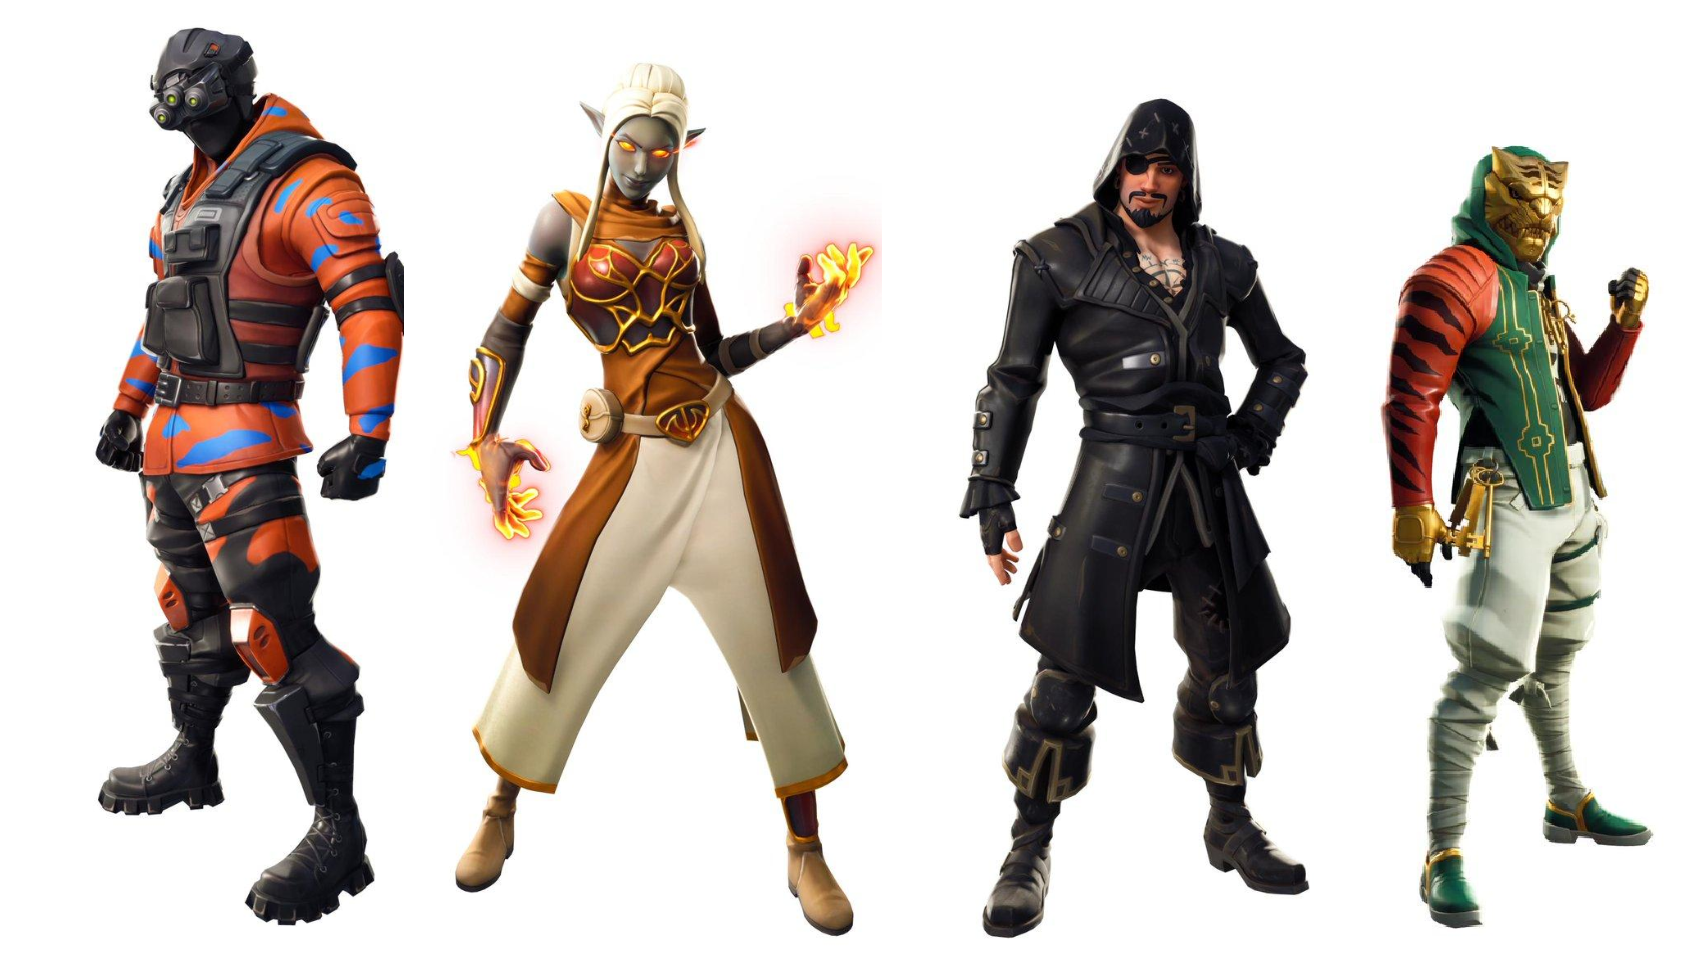 Fortnite Characters Season 8 Skins | Fortnite Aimbot Link